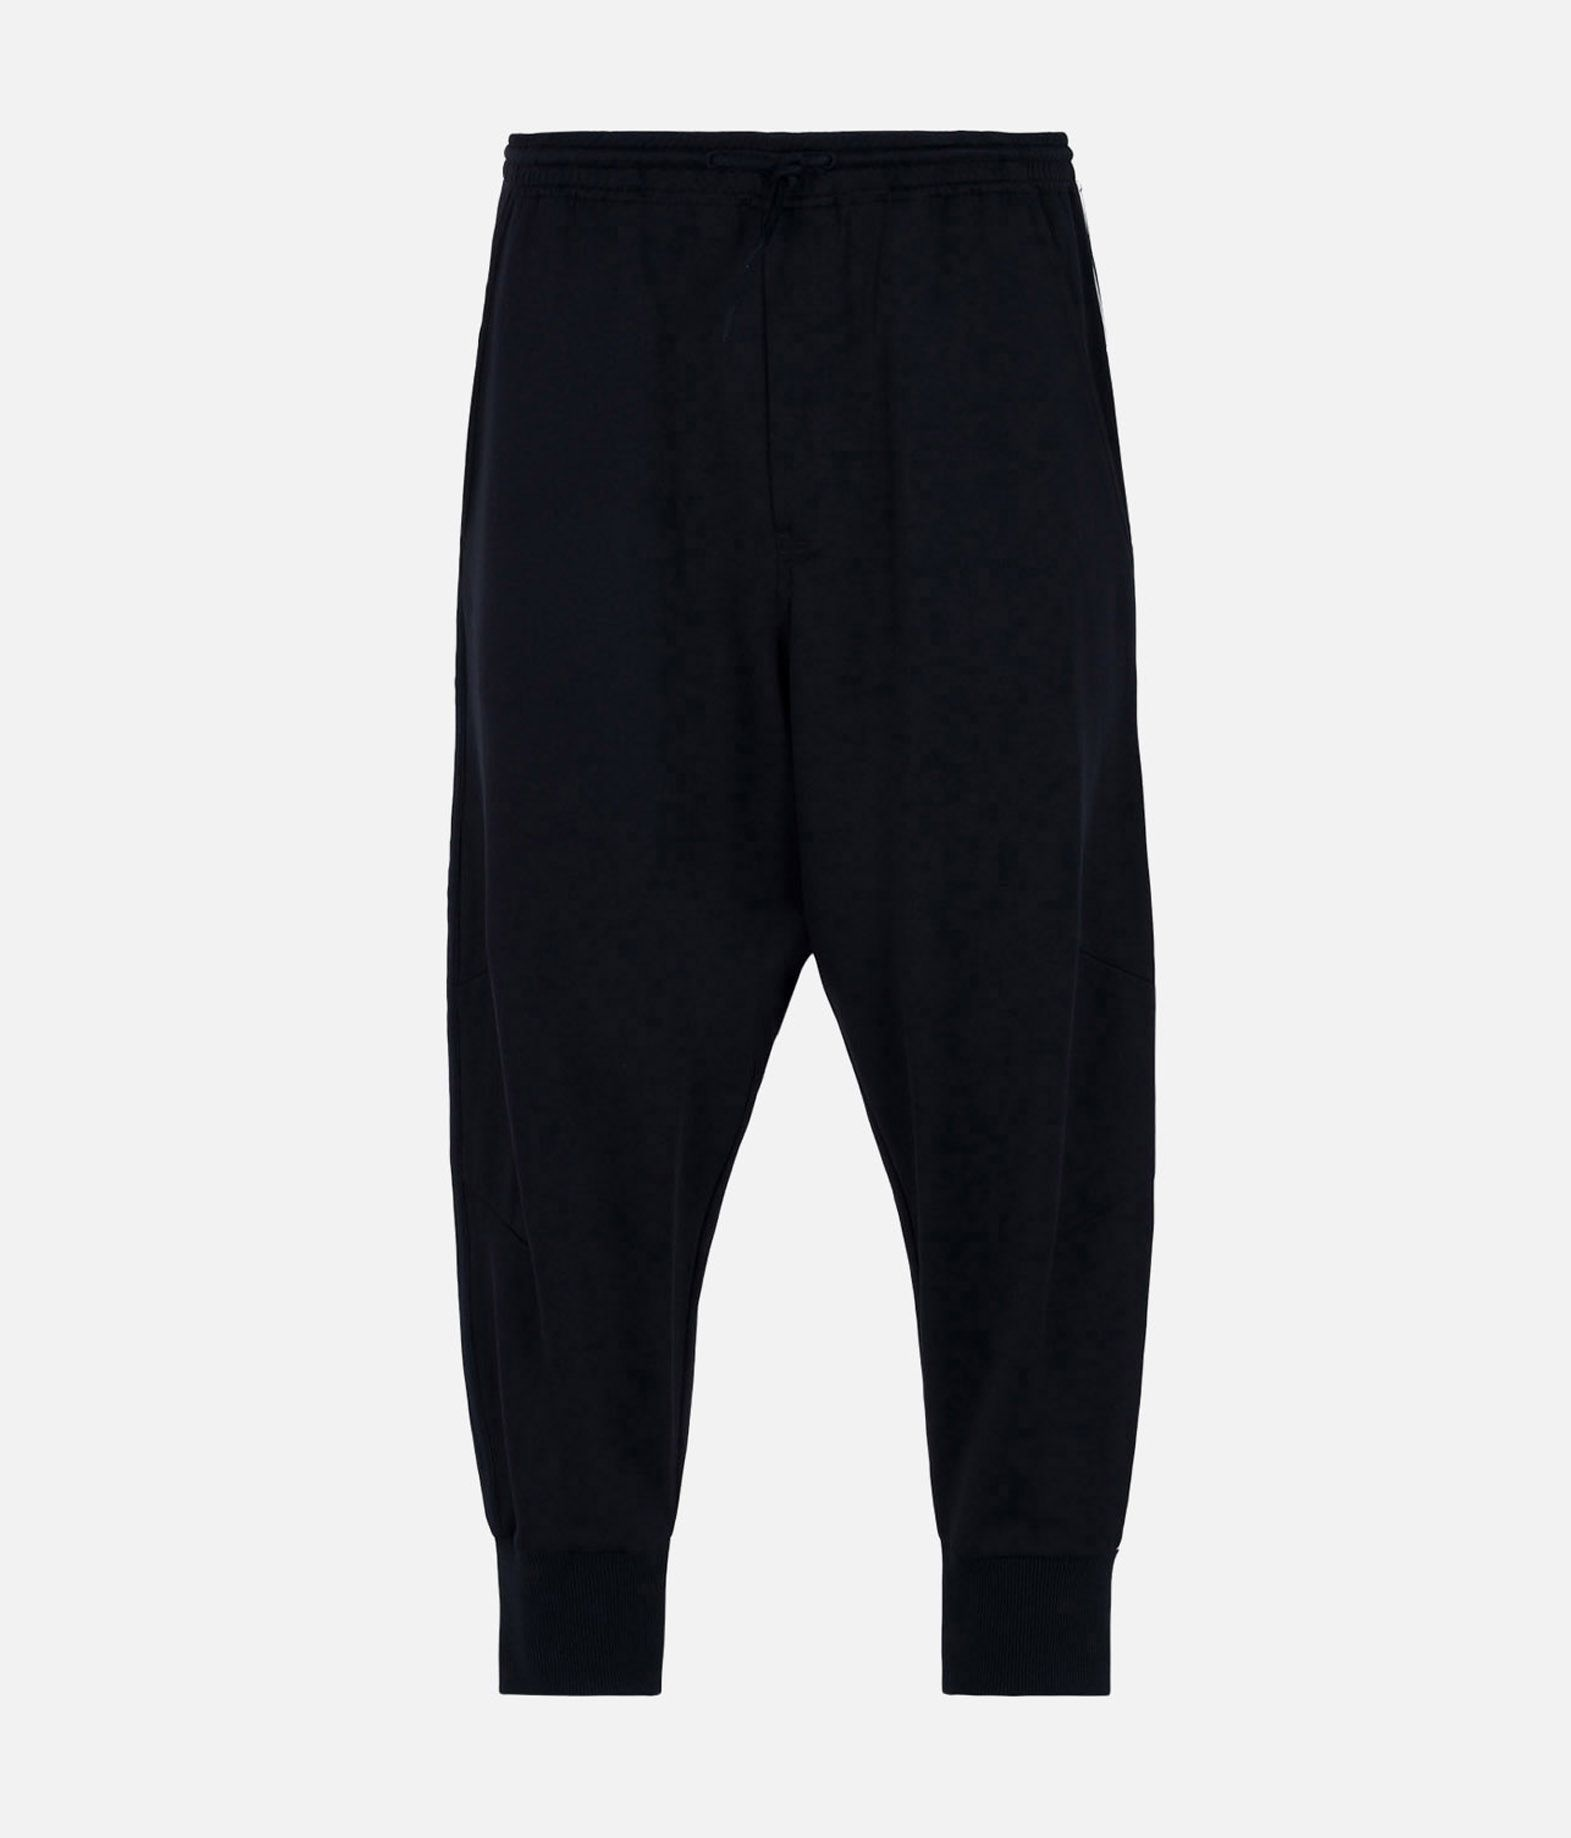 7d81620ea ... Y-3 Y-3 3-STRIPES TRACK PANTS Sweatpants Man f ...